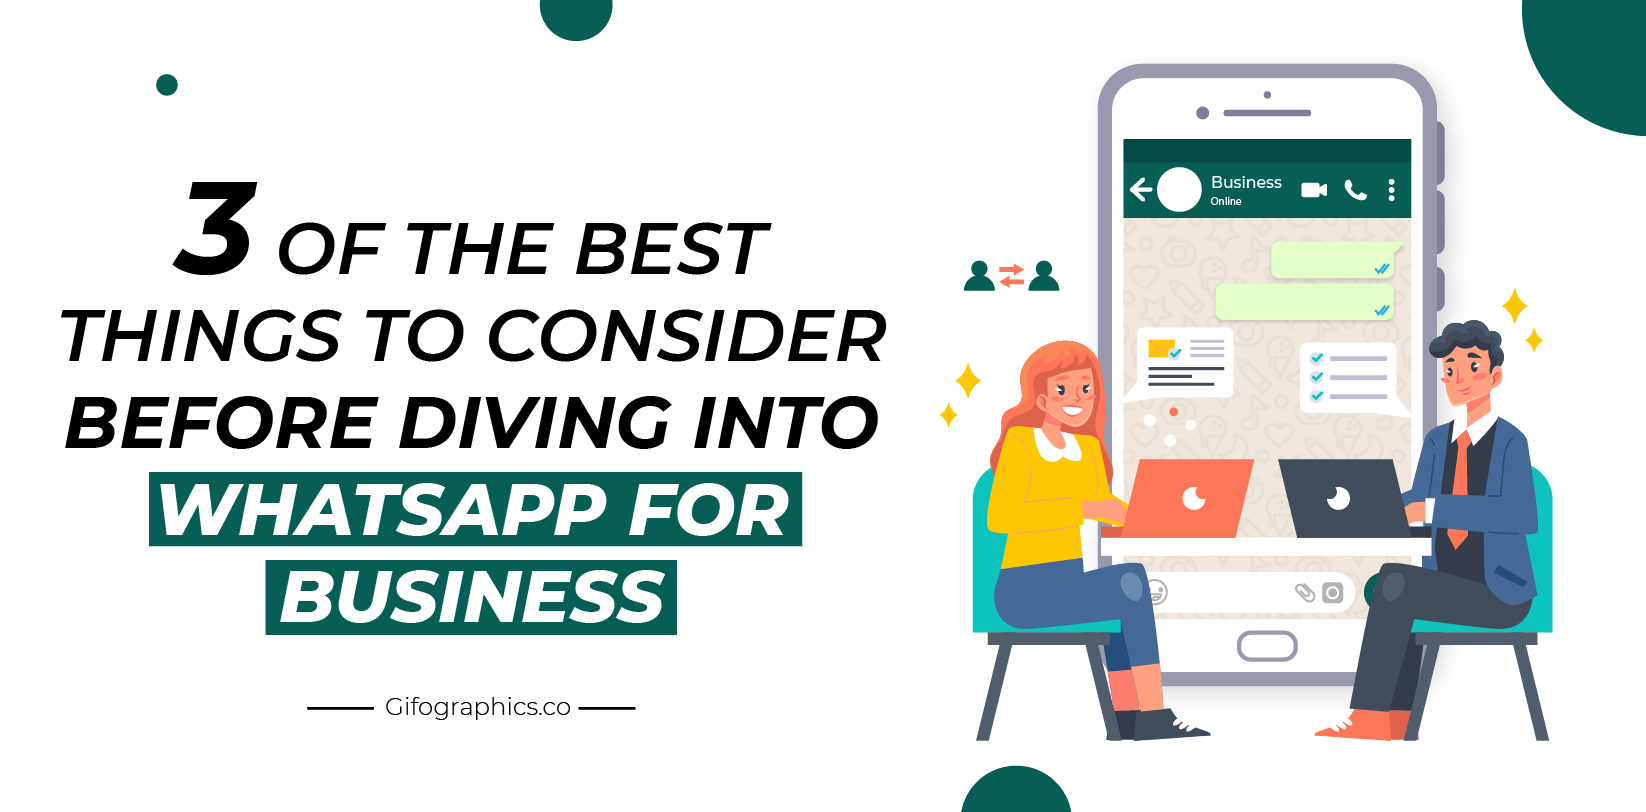 3 of the Best Things to Consider Before Diving Into WhatsApp for Business